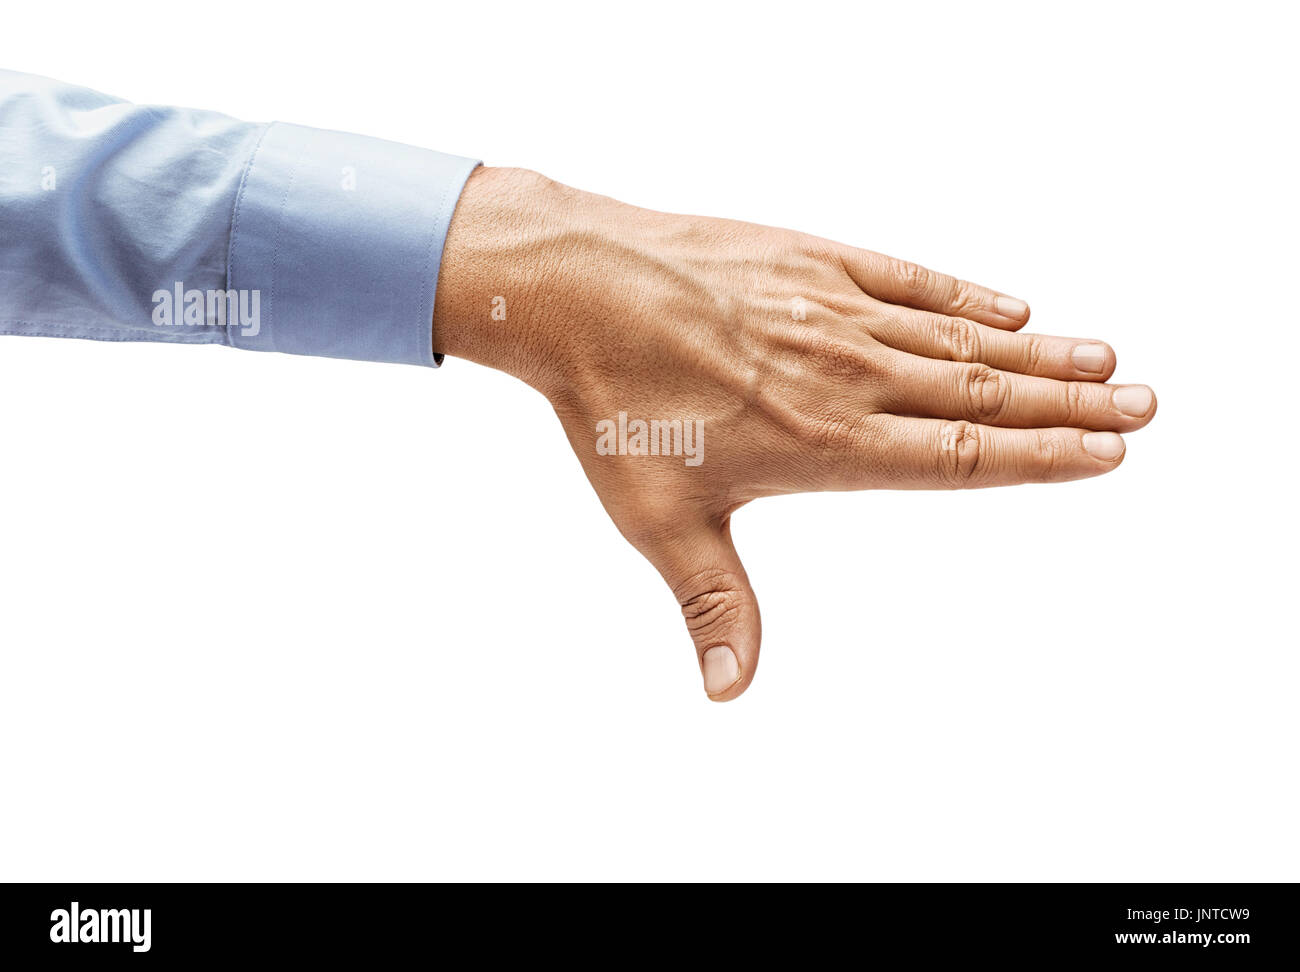 Man's hand in a shirt closes something isolated on white background. Close up. High resolution product - Stock Image